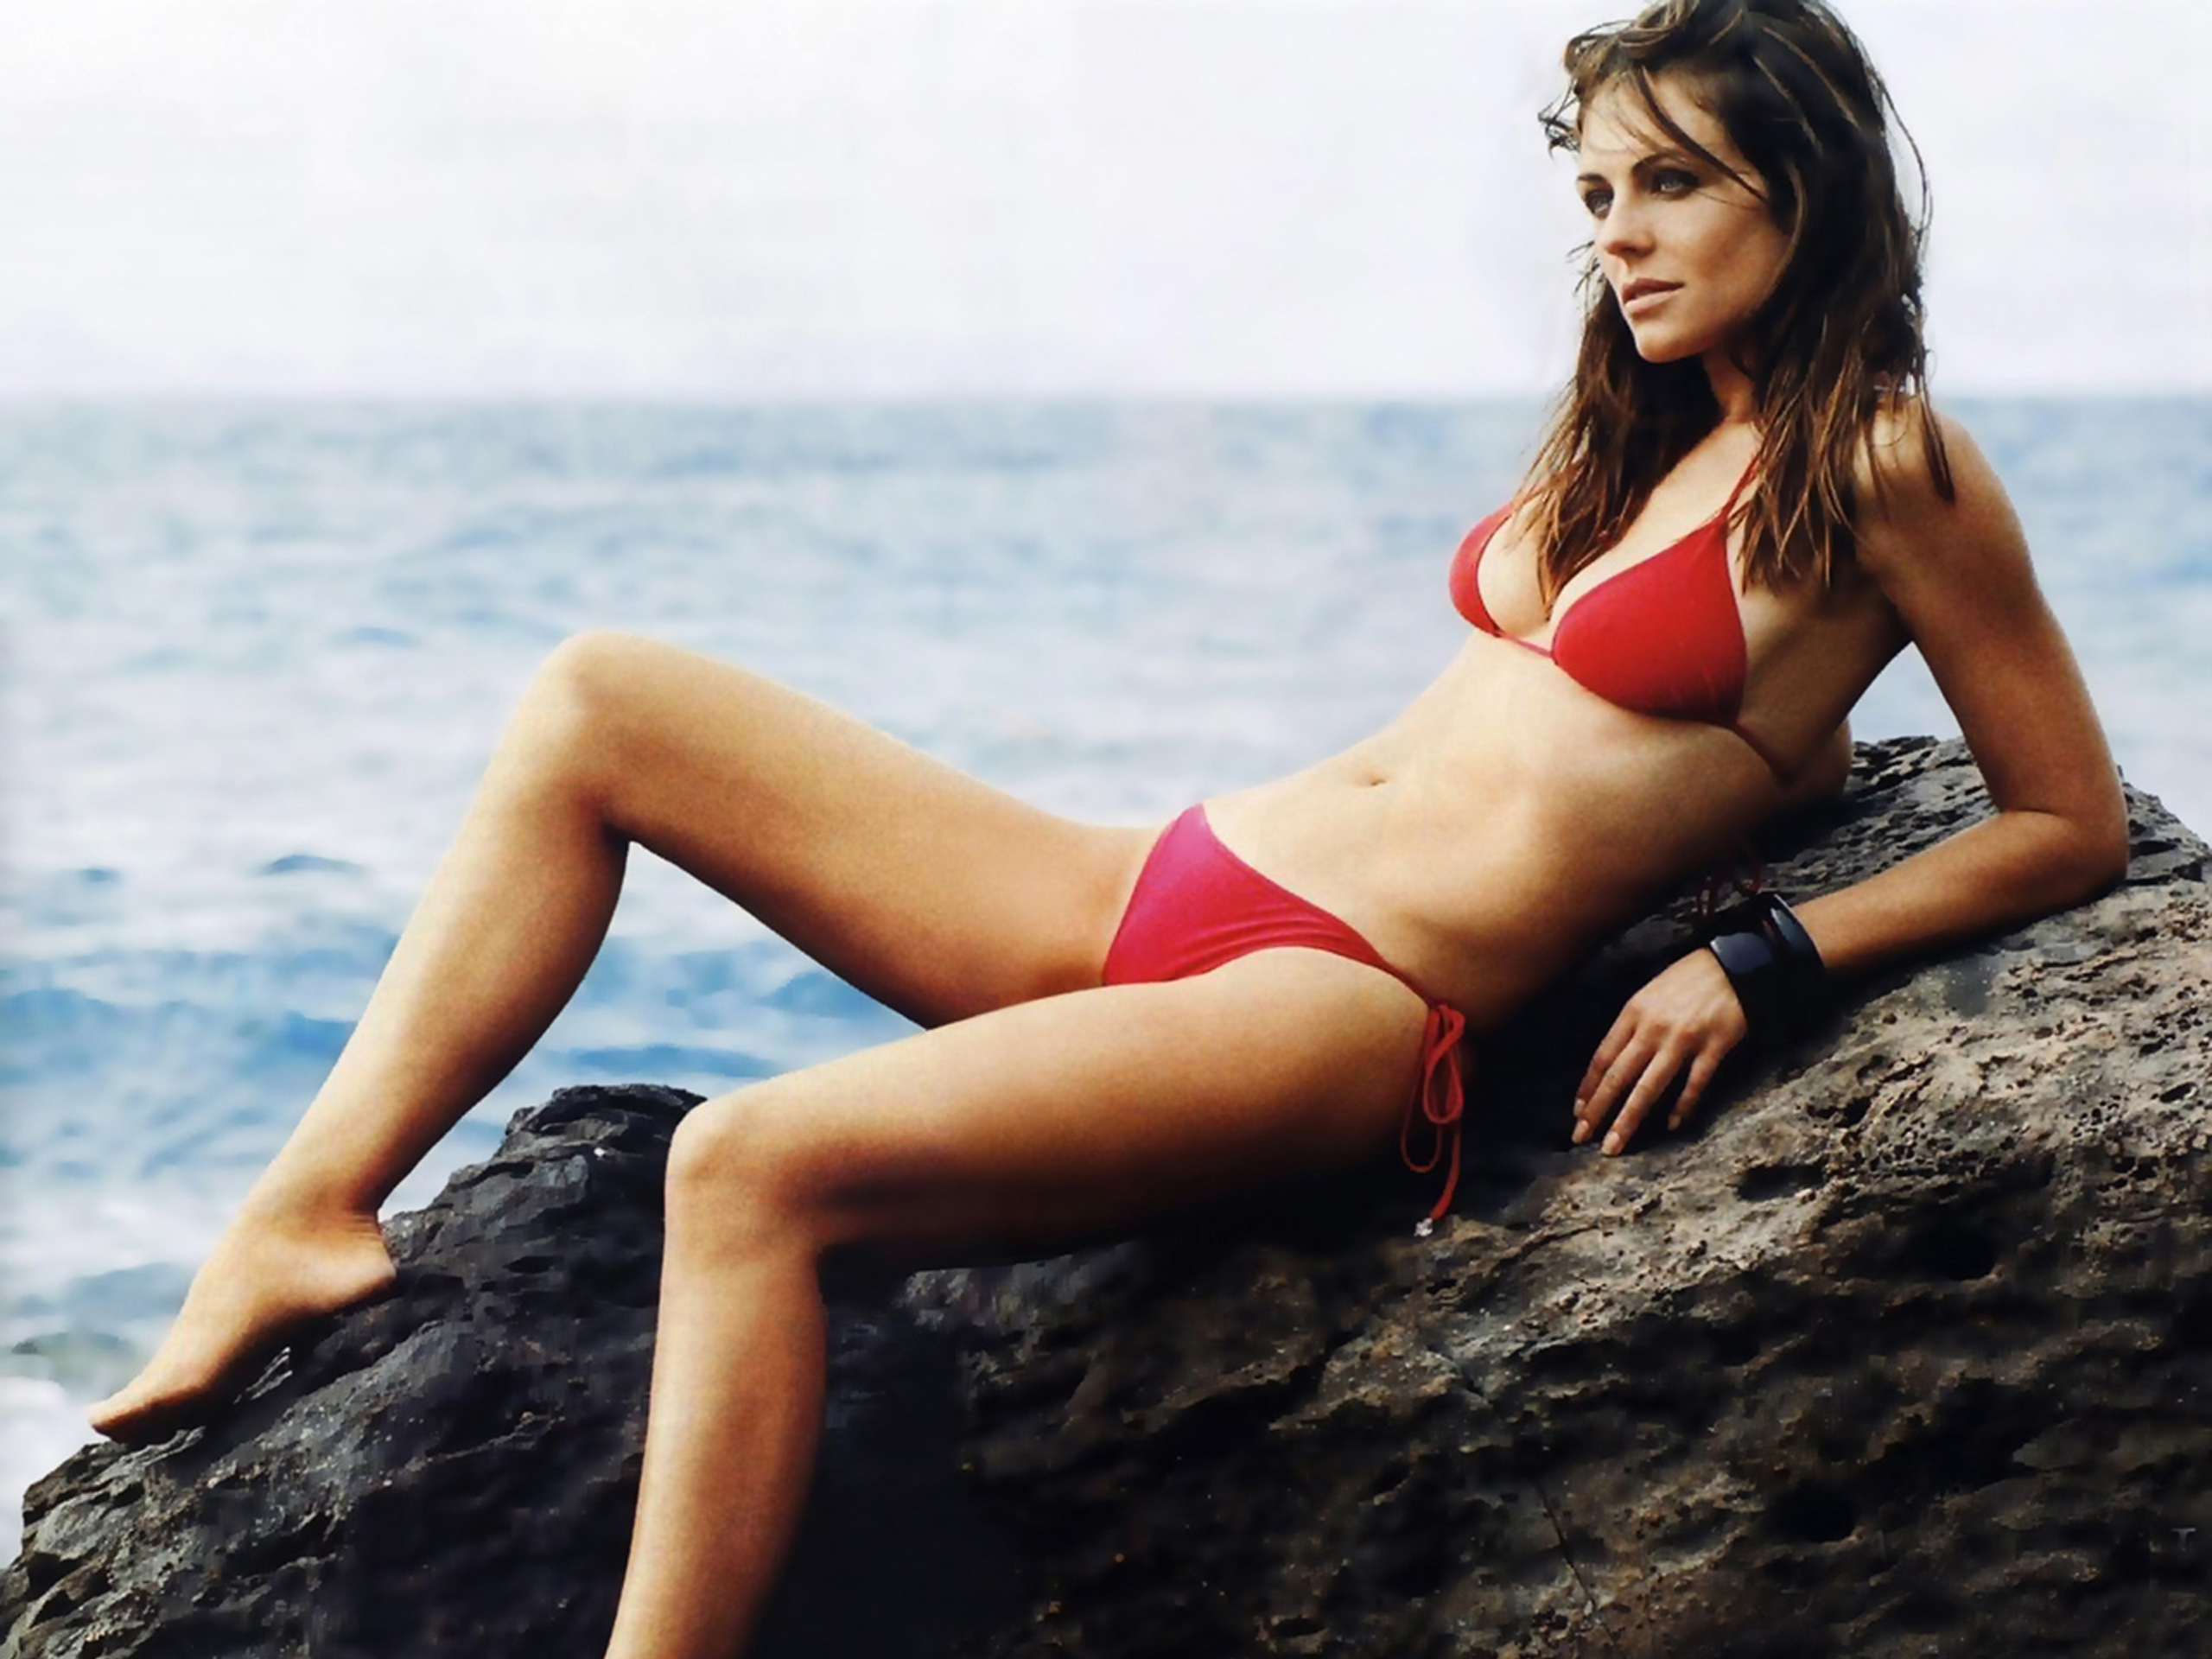 elizabeth-hurley-hot-images-with-boyfriend